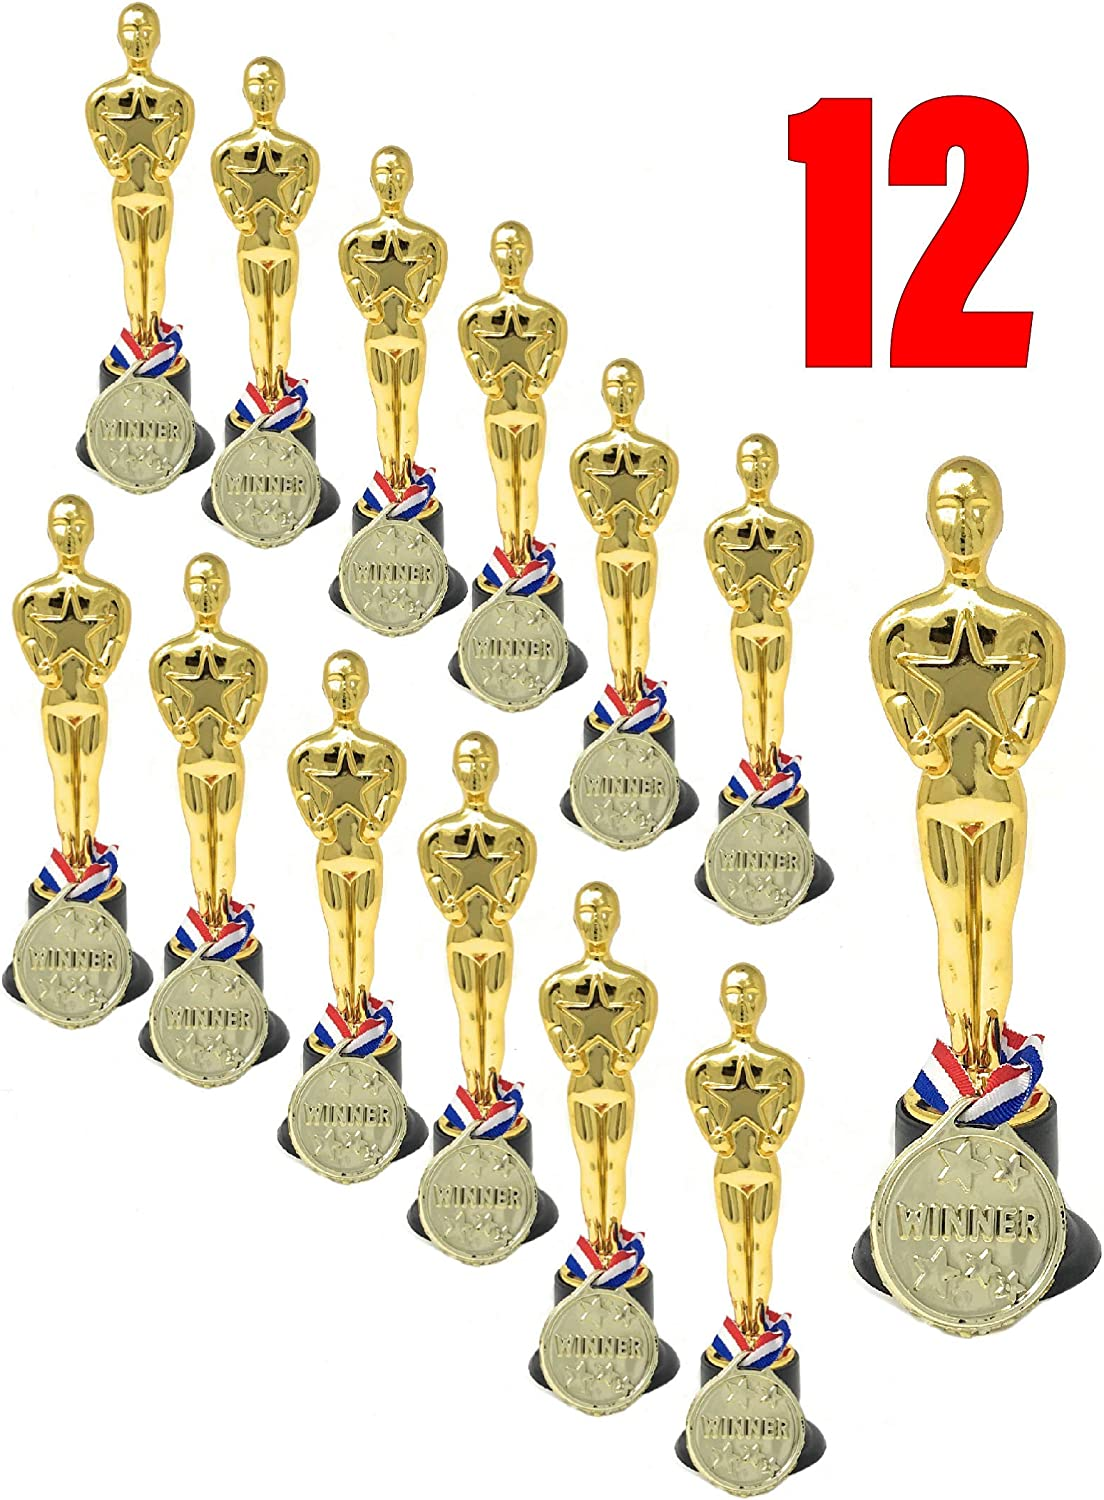 Amazing Set of Trophy Statue and Medal Award  Bulk Pack of 12   Shiny Golden Oscar Trophies & Medal Awards for Kids & Adults   Ideal As Party Favors, Reward Prizes   Sports Events  Goody Bag Stuffers   Ceremonies Award